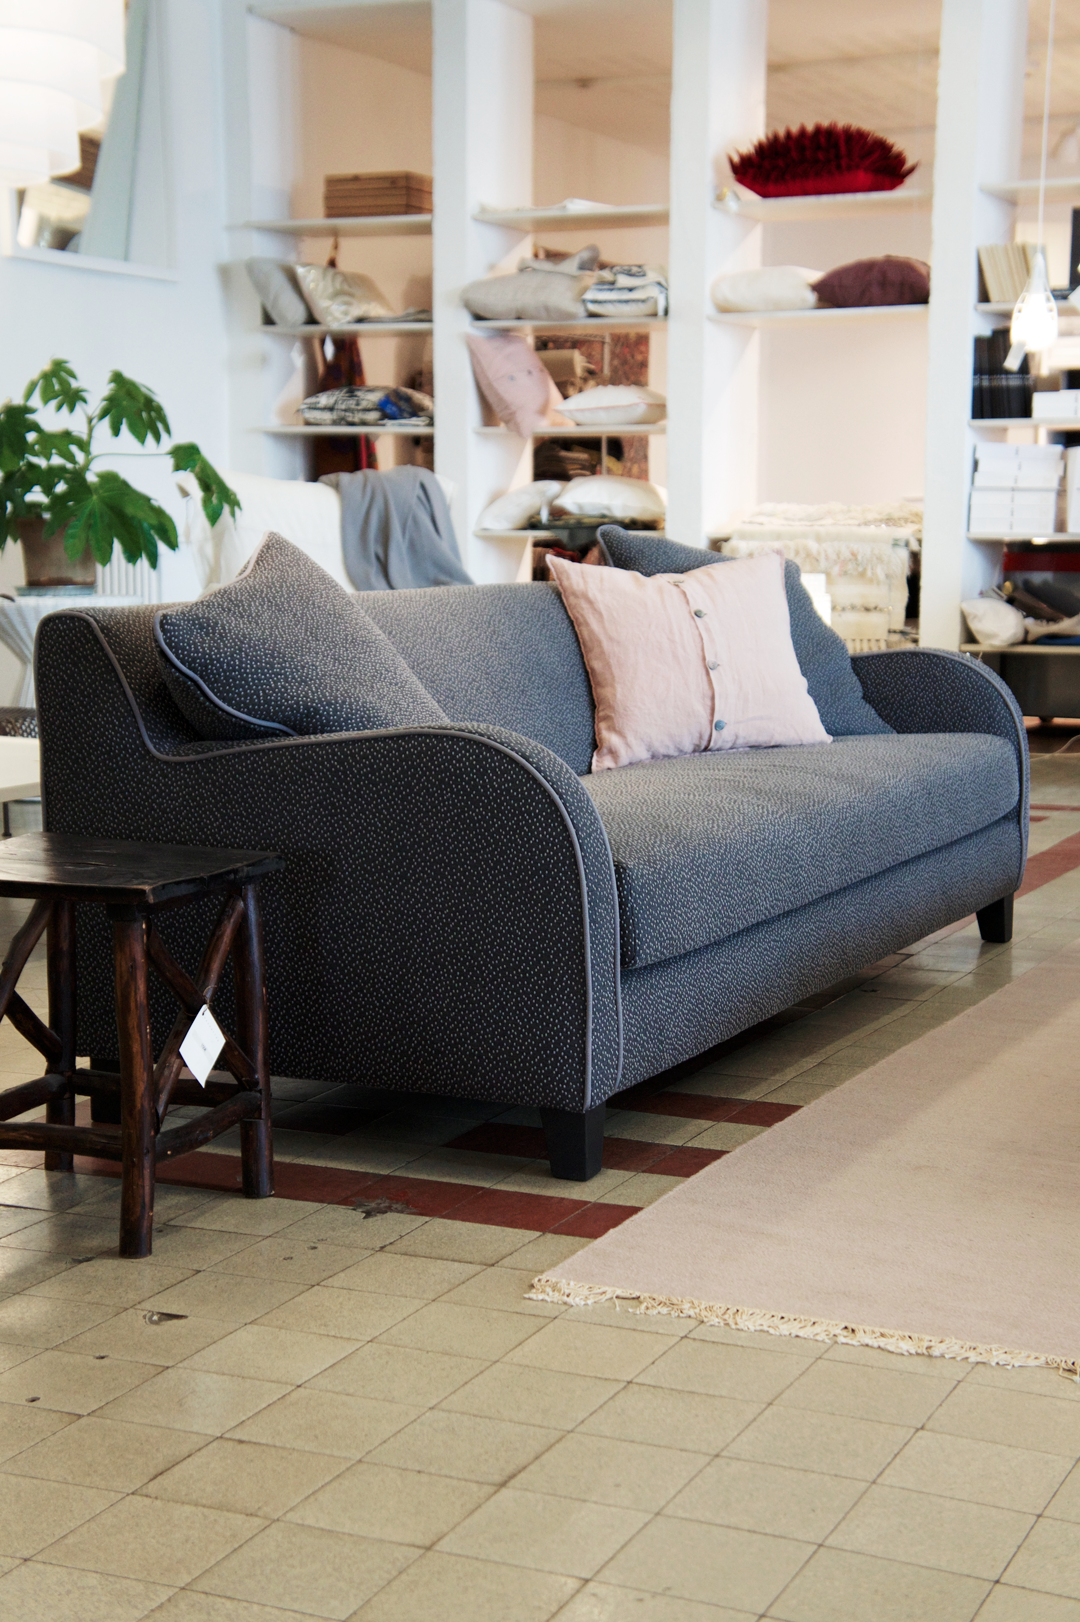 The Joyous Speckled Fabric Makes This Sofa Stand Out From Crowd